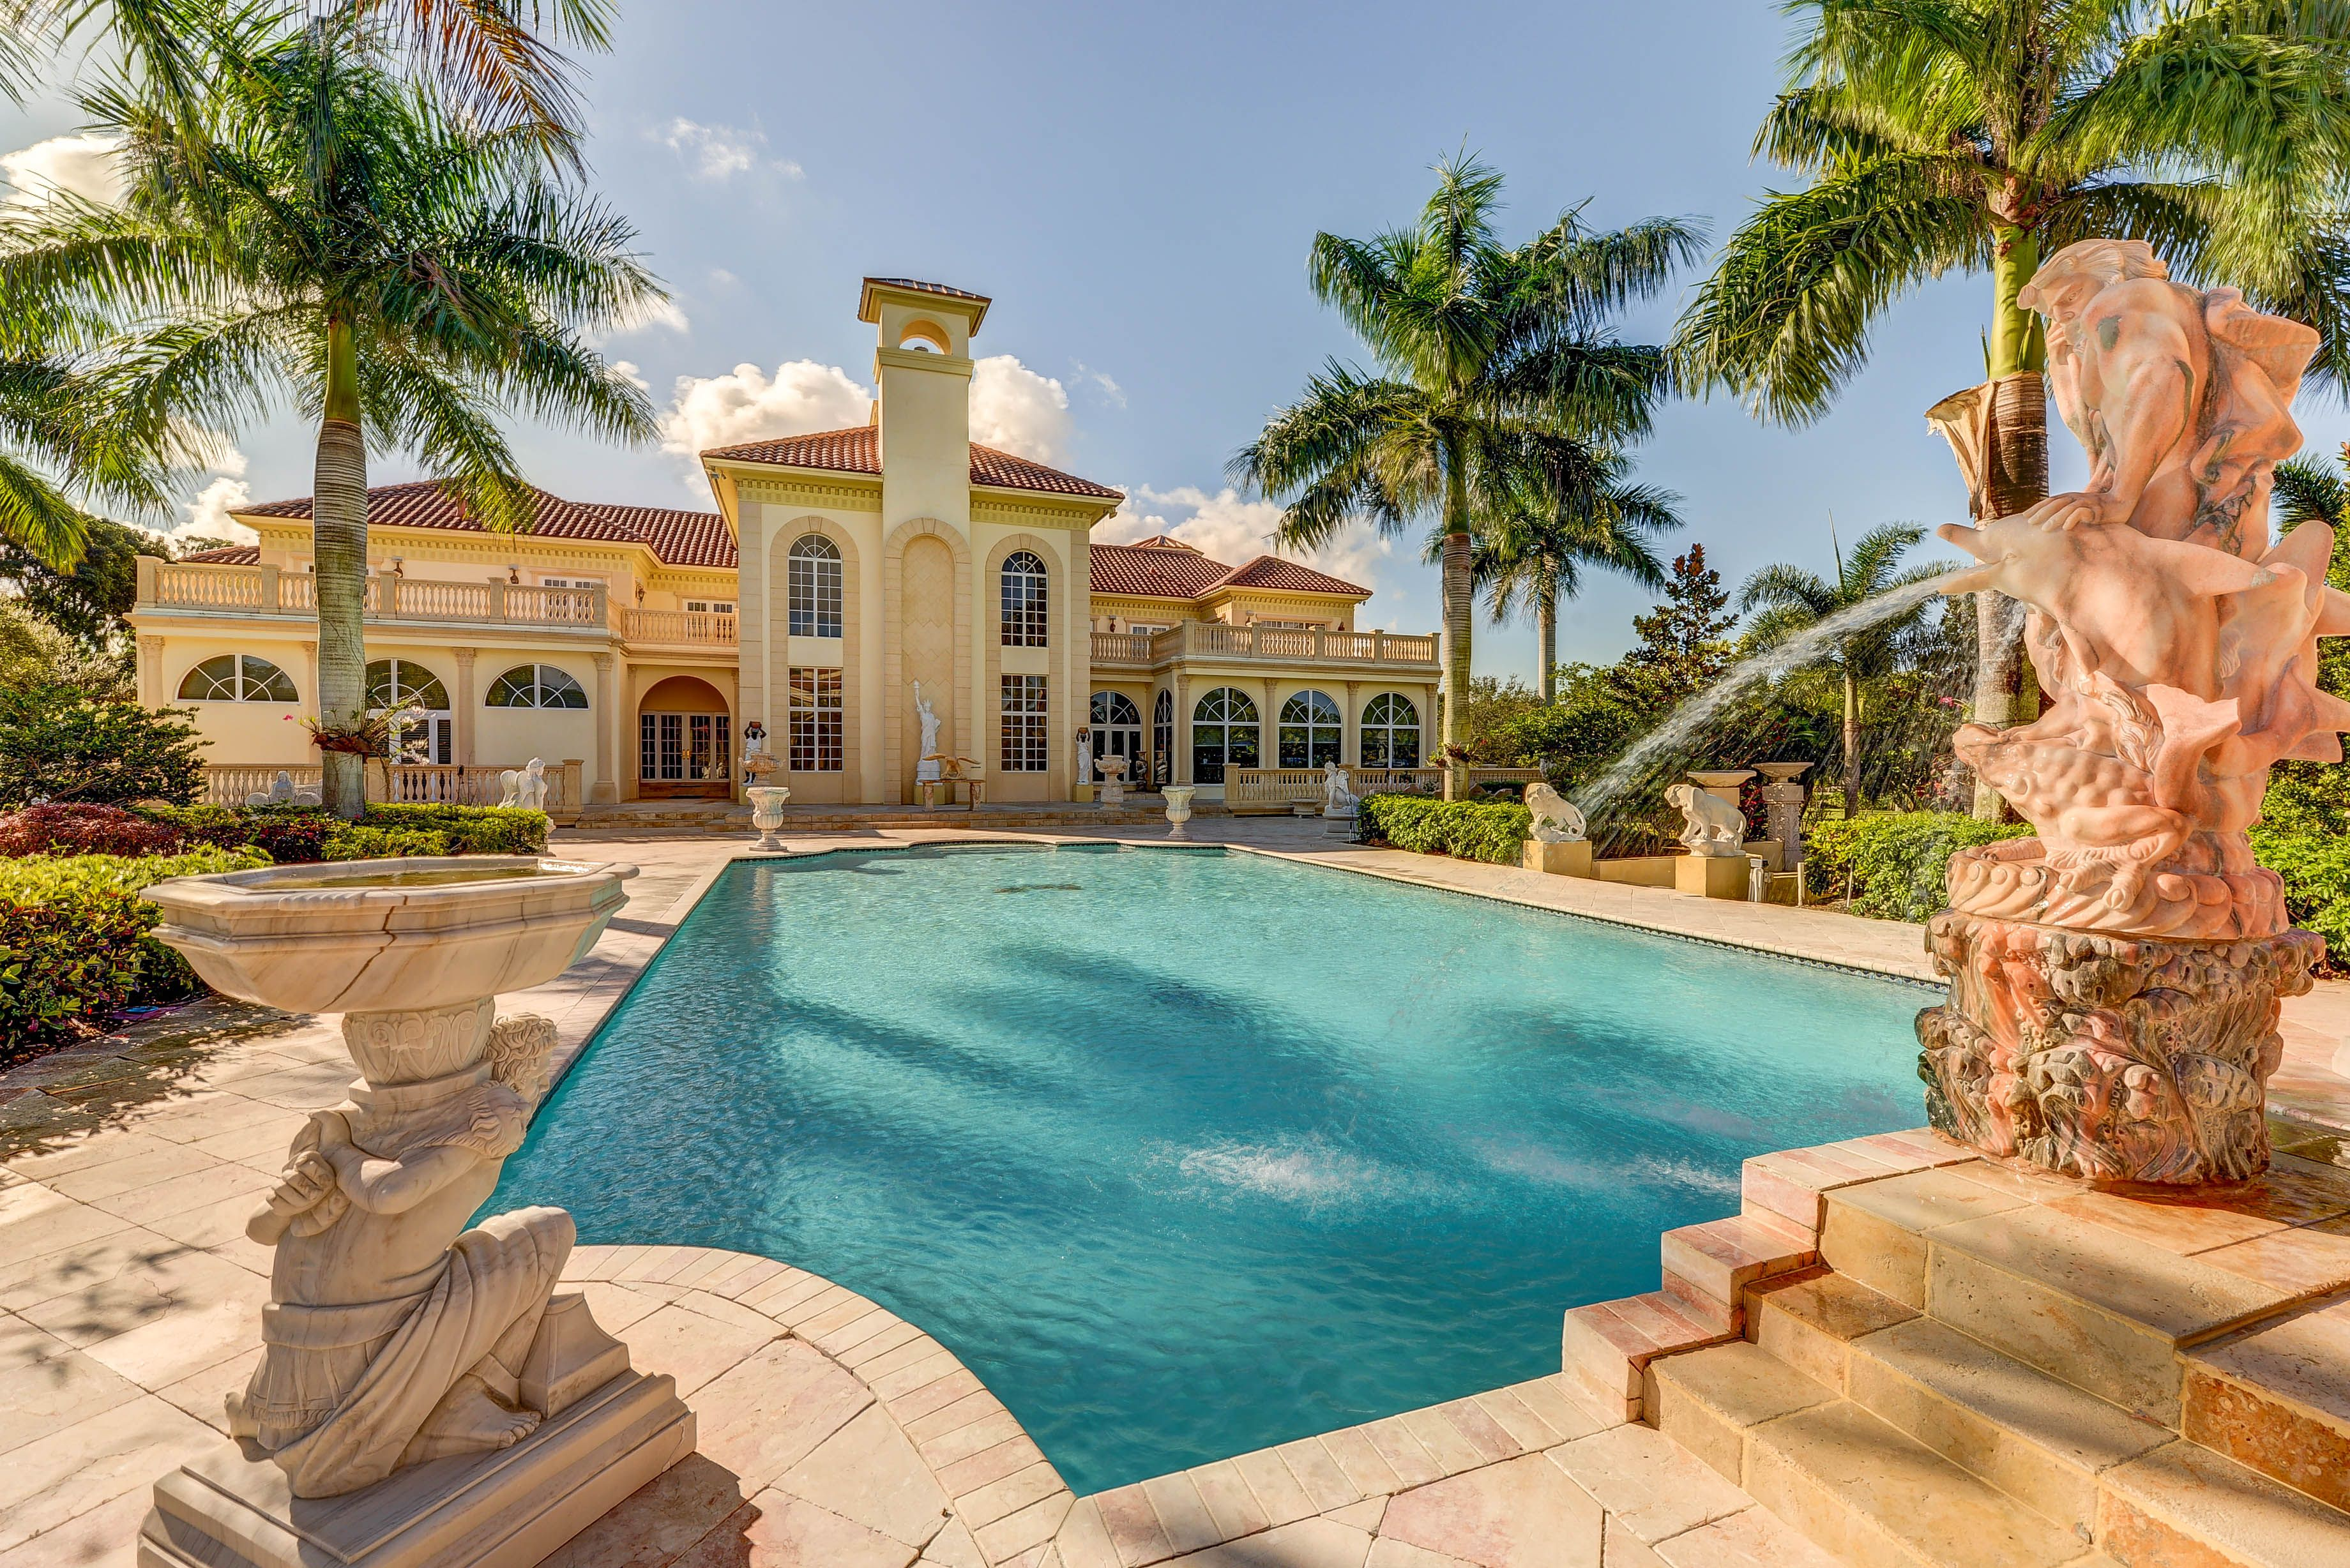 Pin On Court Of Versailles Fort Lauderdale Fl